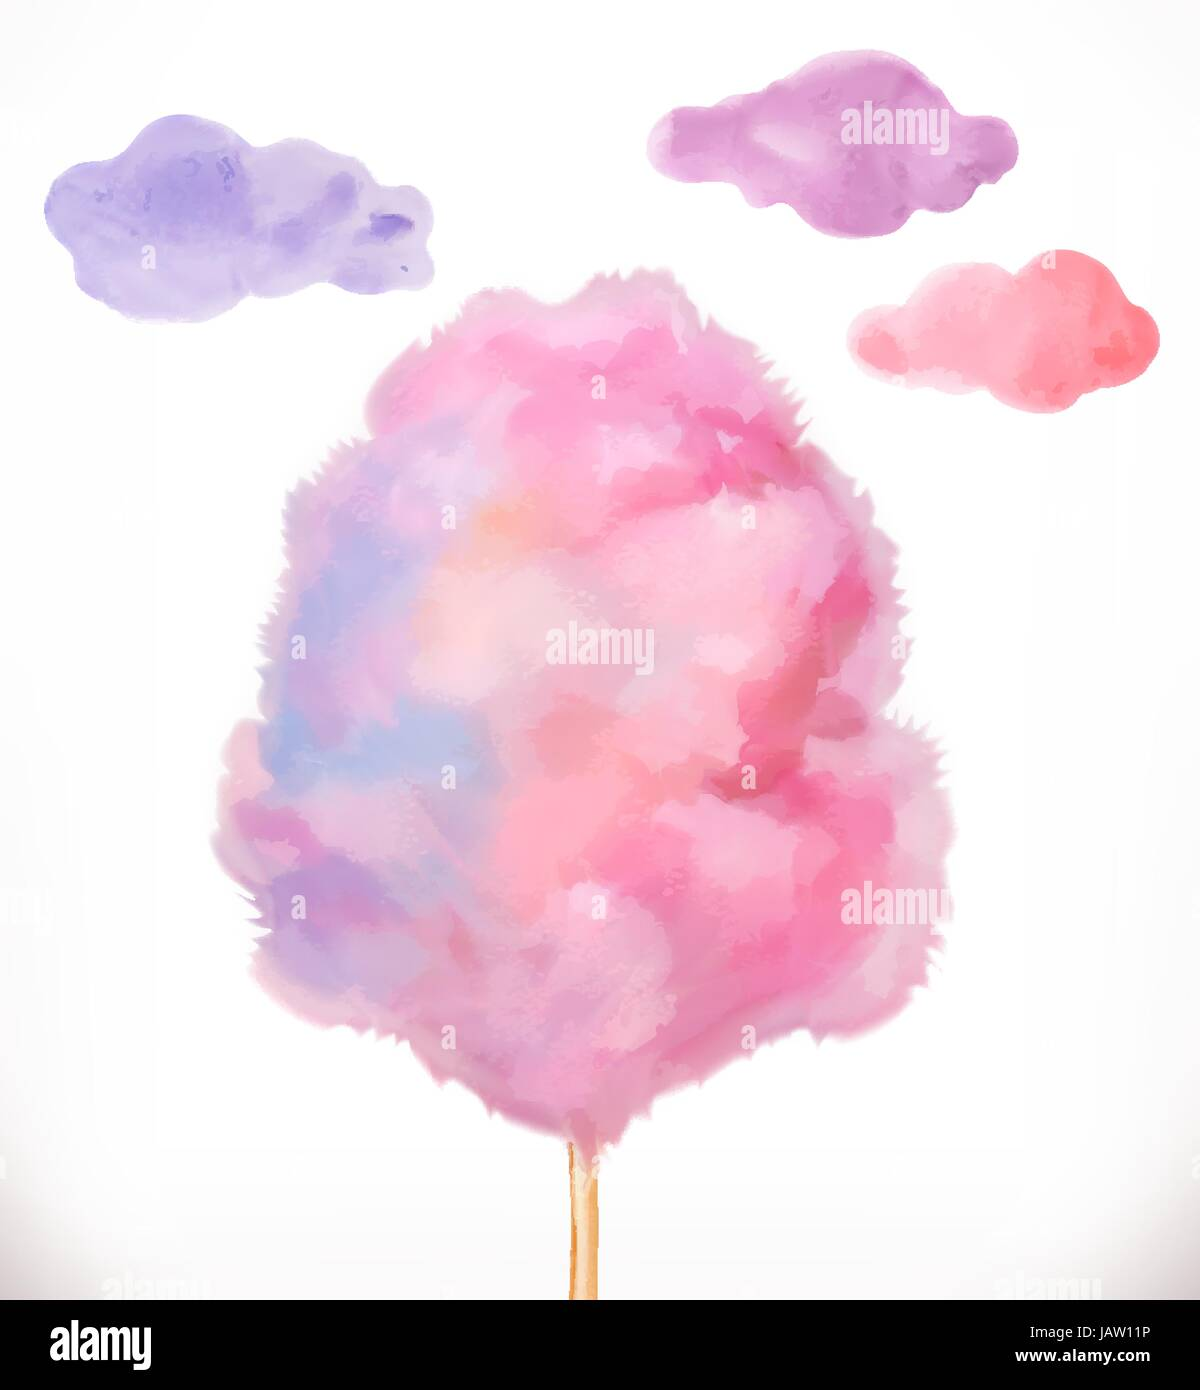 Cotton candy. Sugar clouds. Watercolor vector illustration - Stock Image